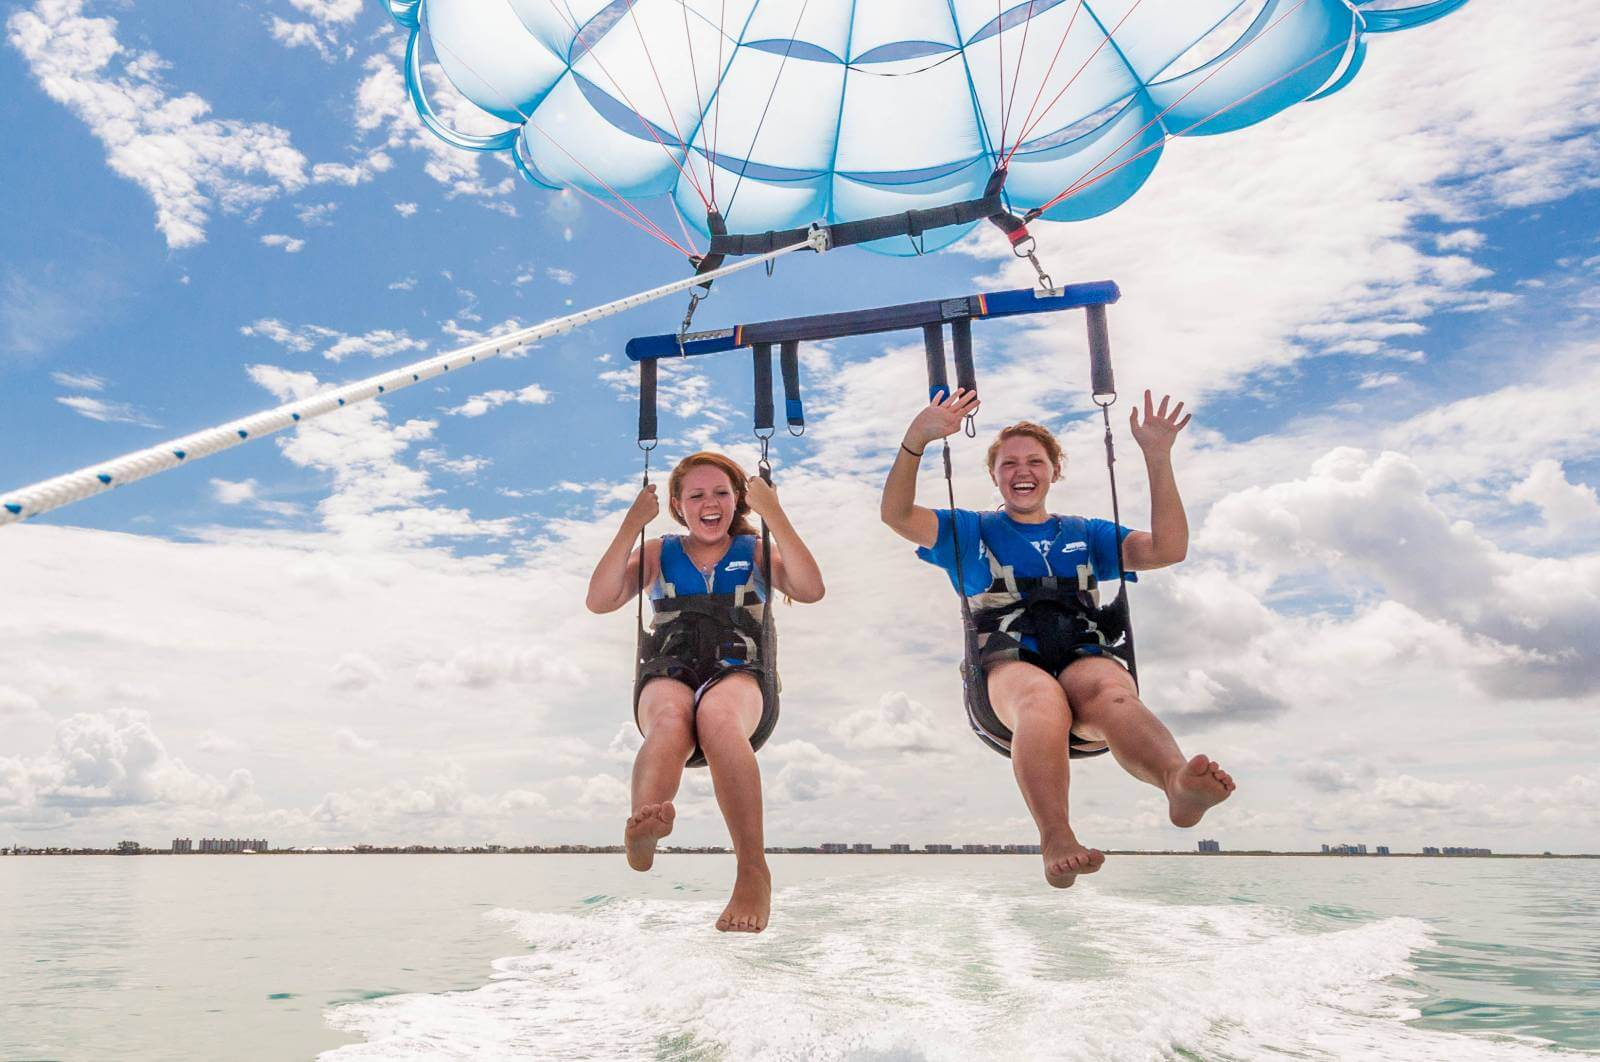 Tandem parasail. Experience the natural beauty of Naples and Marco Island, Florida with an exciting parasailing tour.